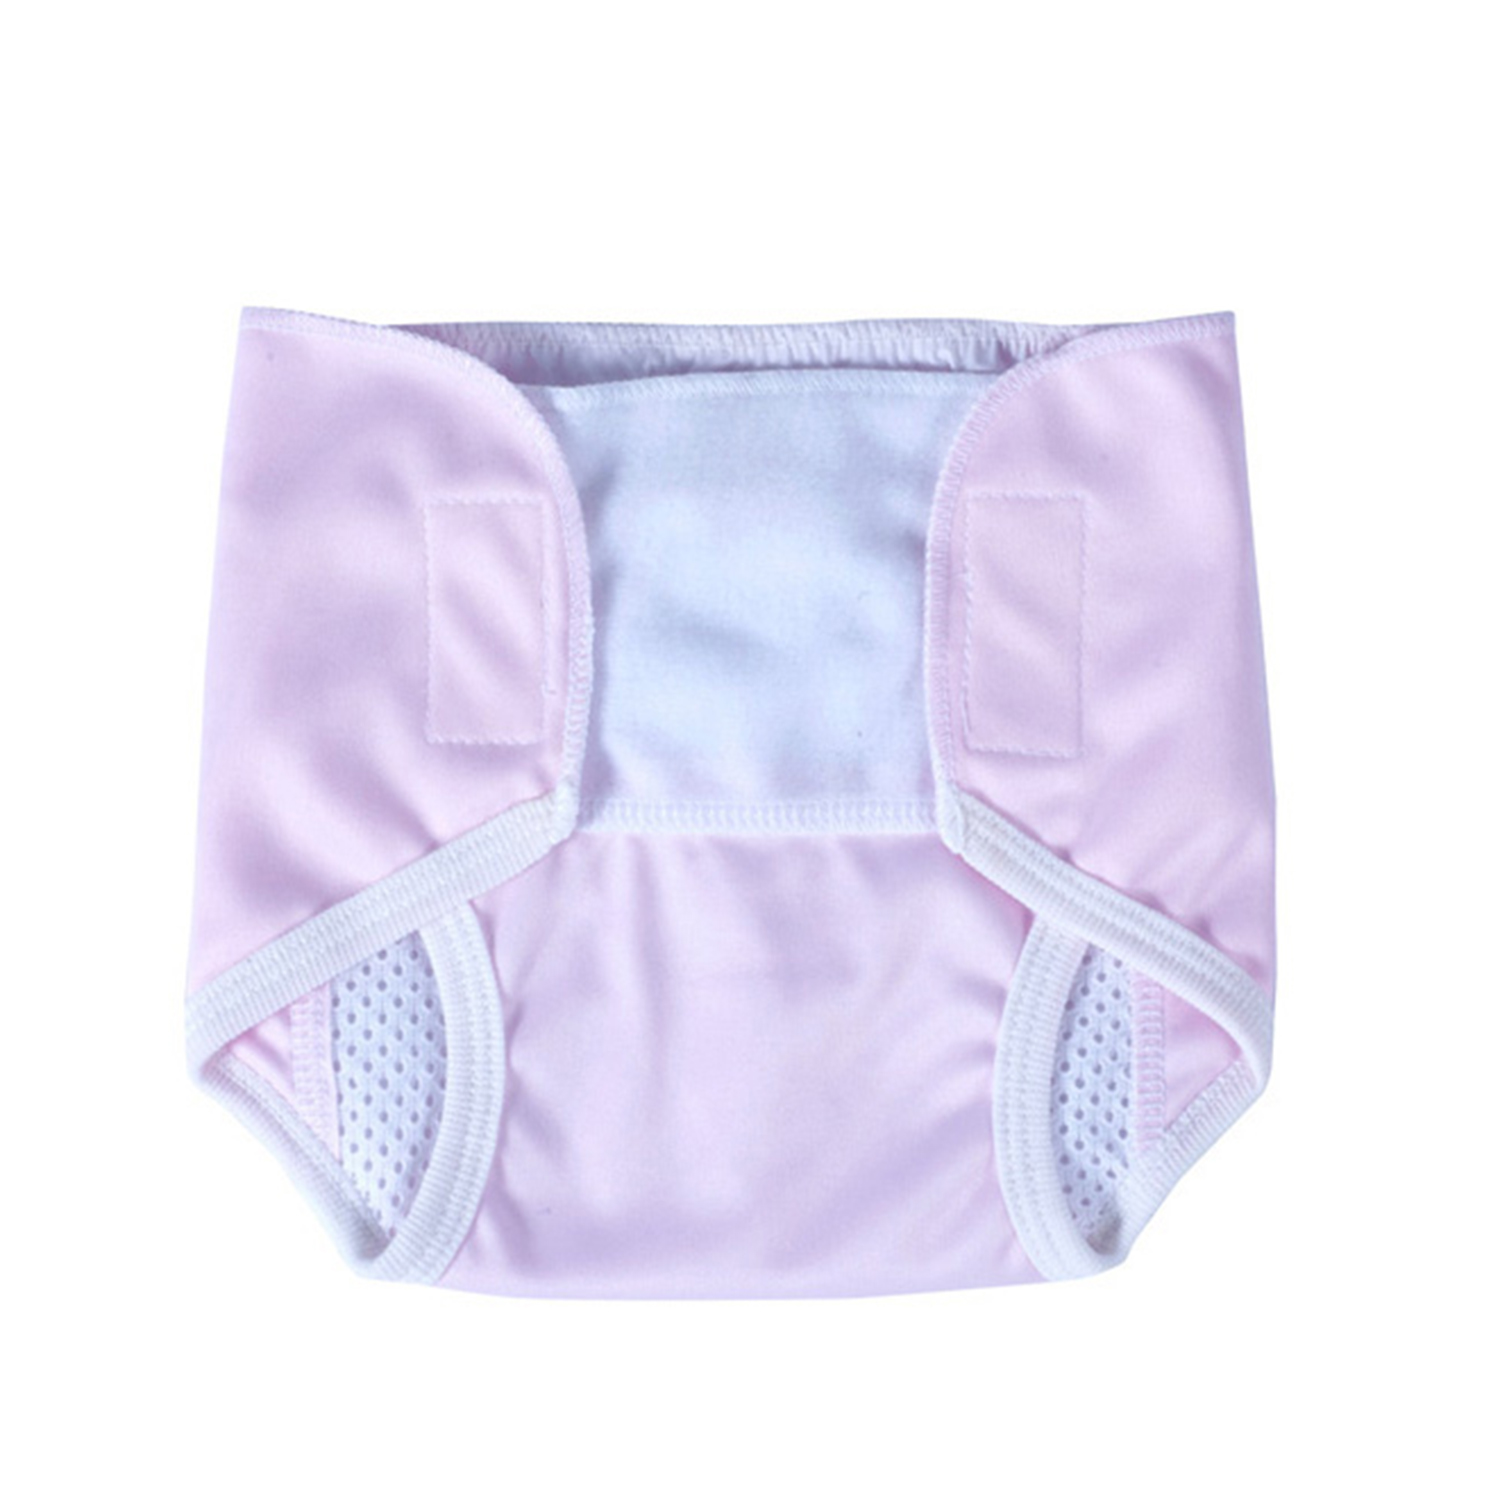 Tollyjoy 3103 Newborn Pant Style Diaper Pink